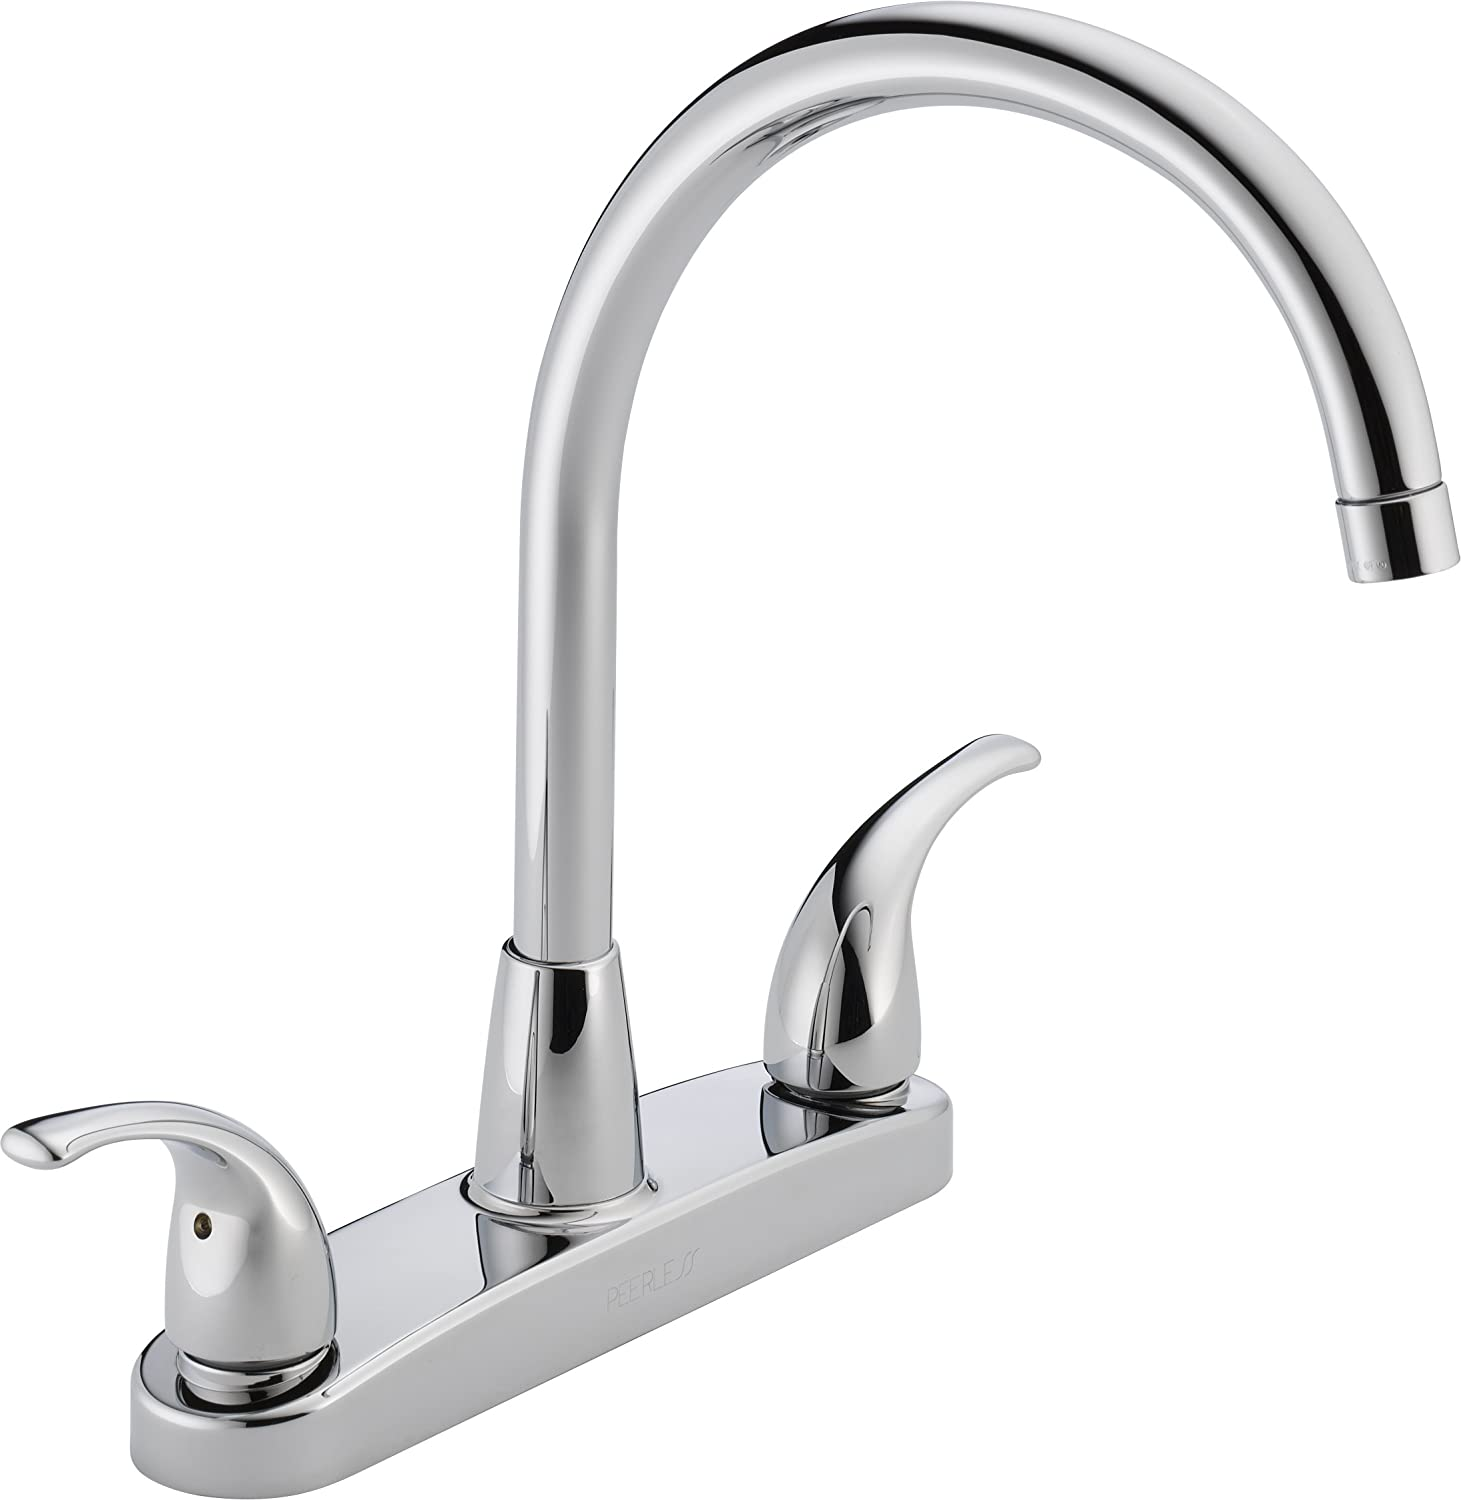 Peerless P299568LF Choice Two Handle Kitchen Faucet, Chrome - Touch ...